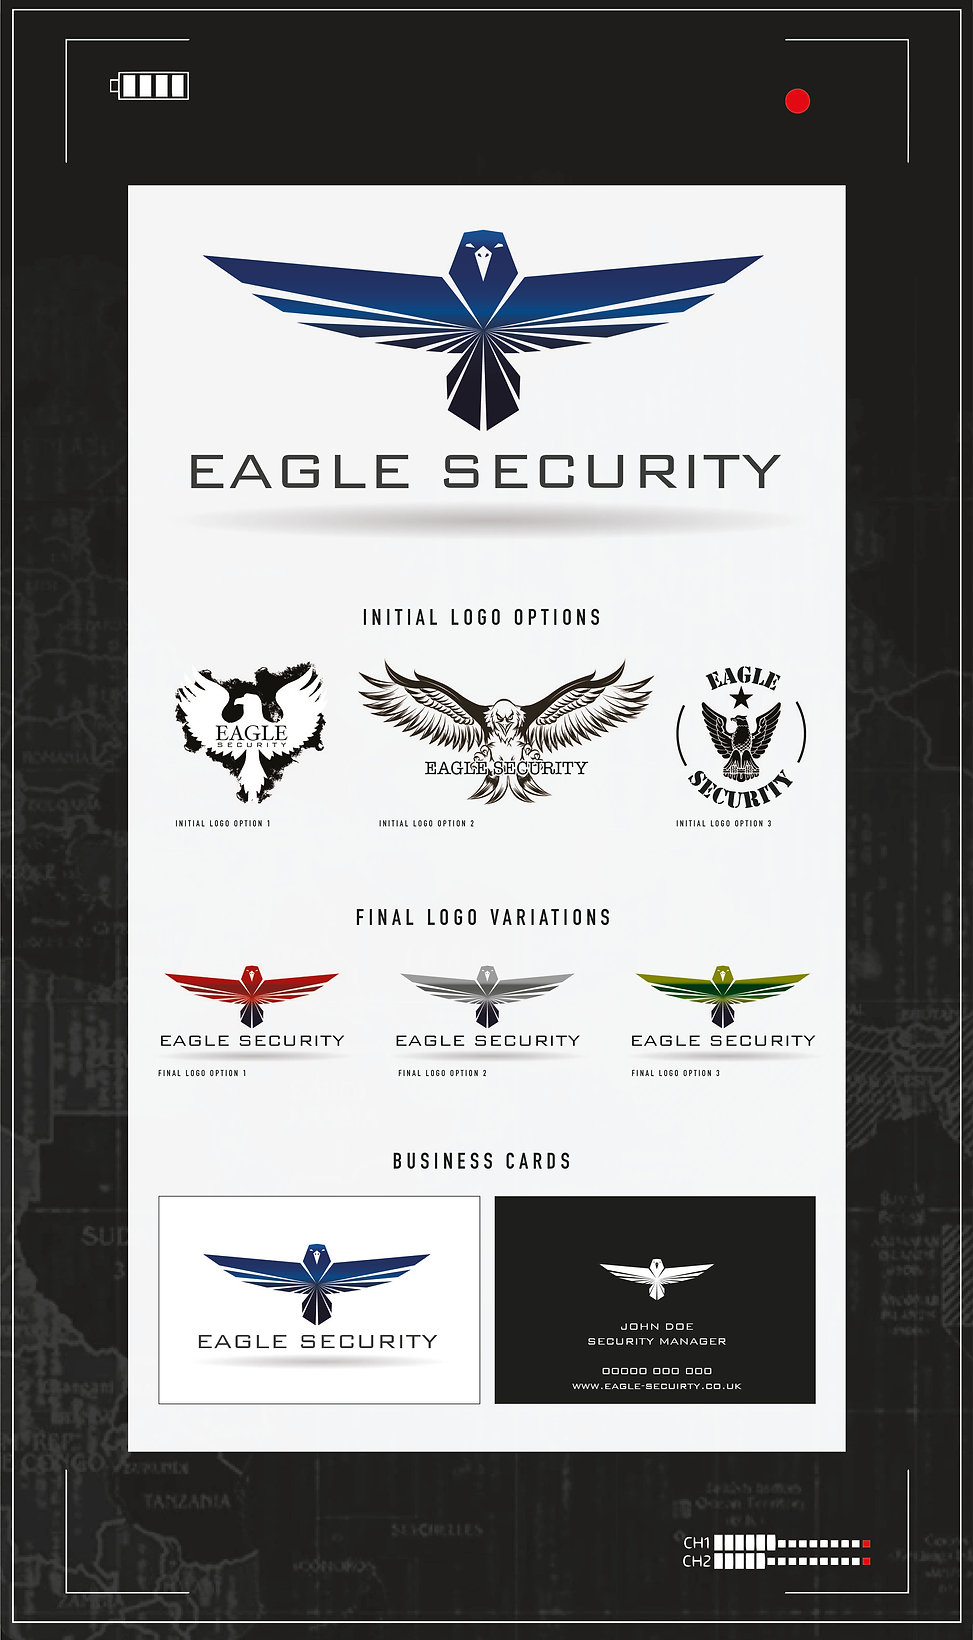 Eagle Secuirty-01.jpg